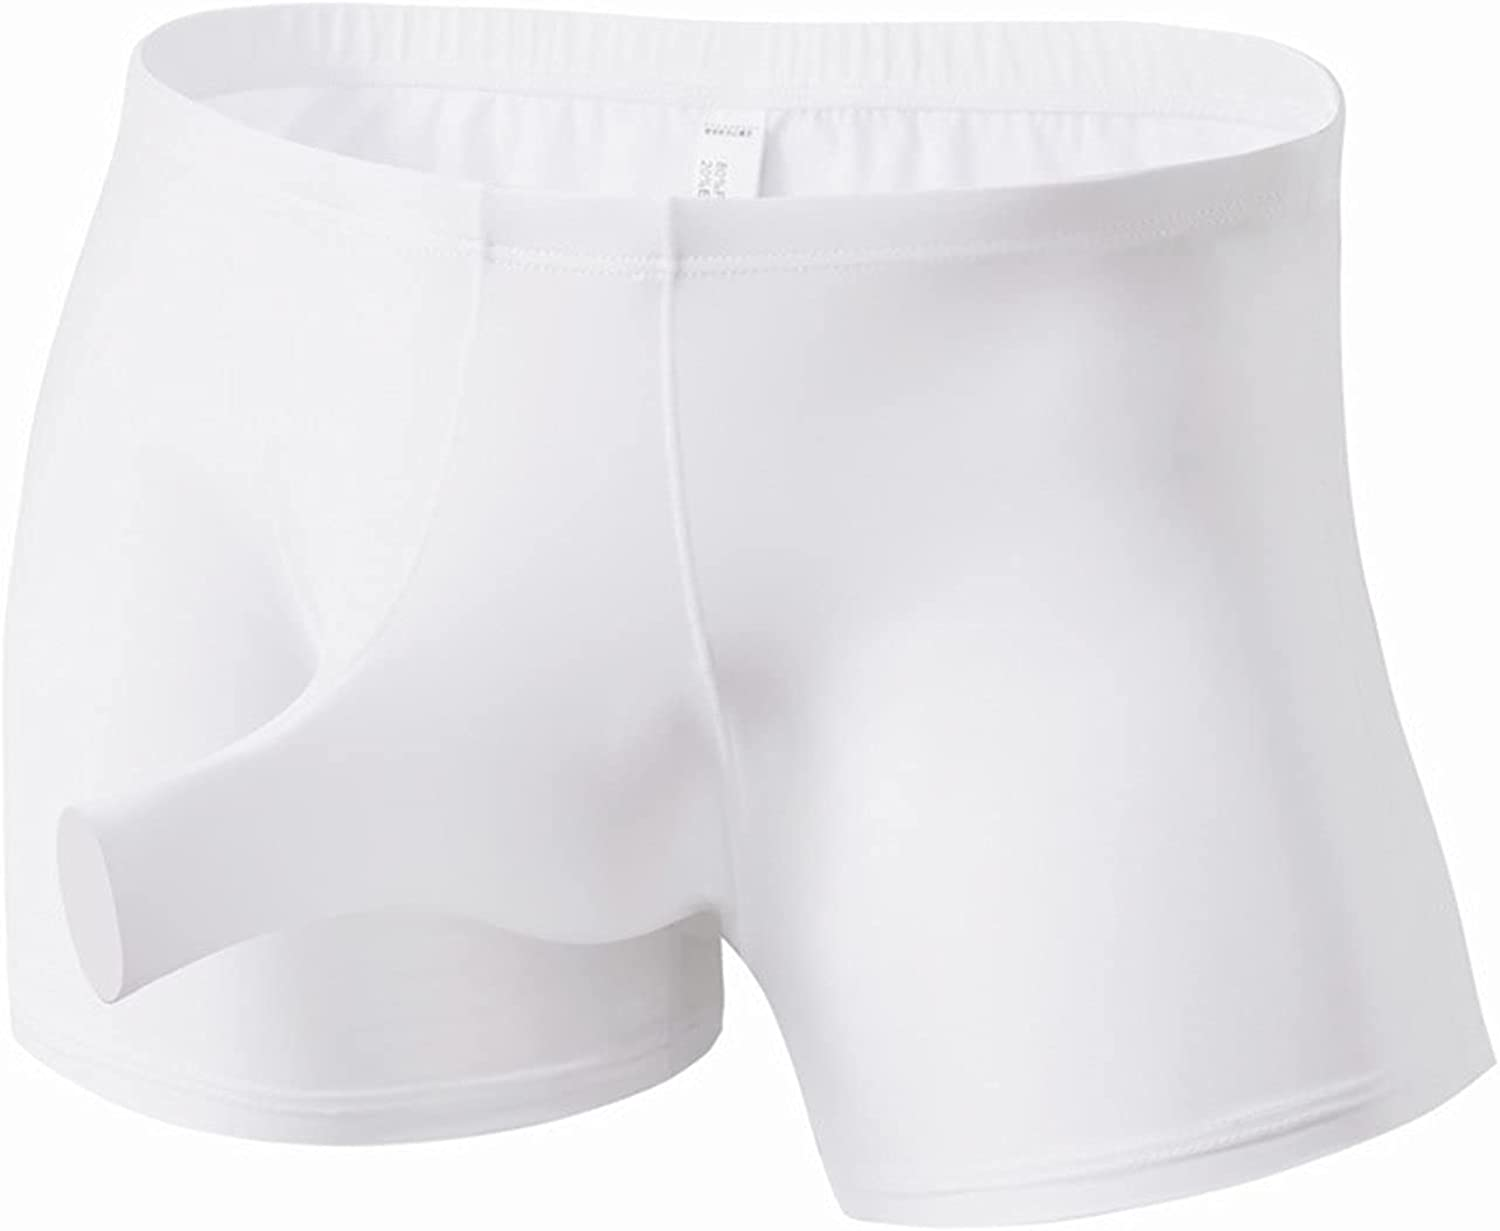 Mens Ice Silk Elephant Nose Boxer Briefs U Convex See-Through Soft Underwear Sexy Bulge Pouch G-String Thong Underpants